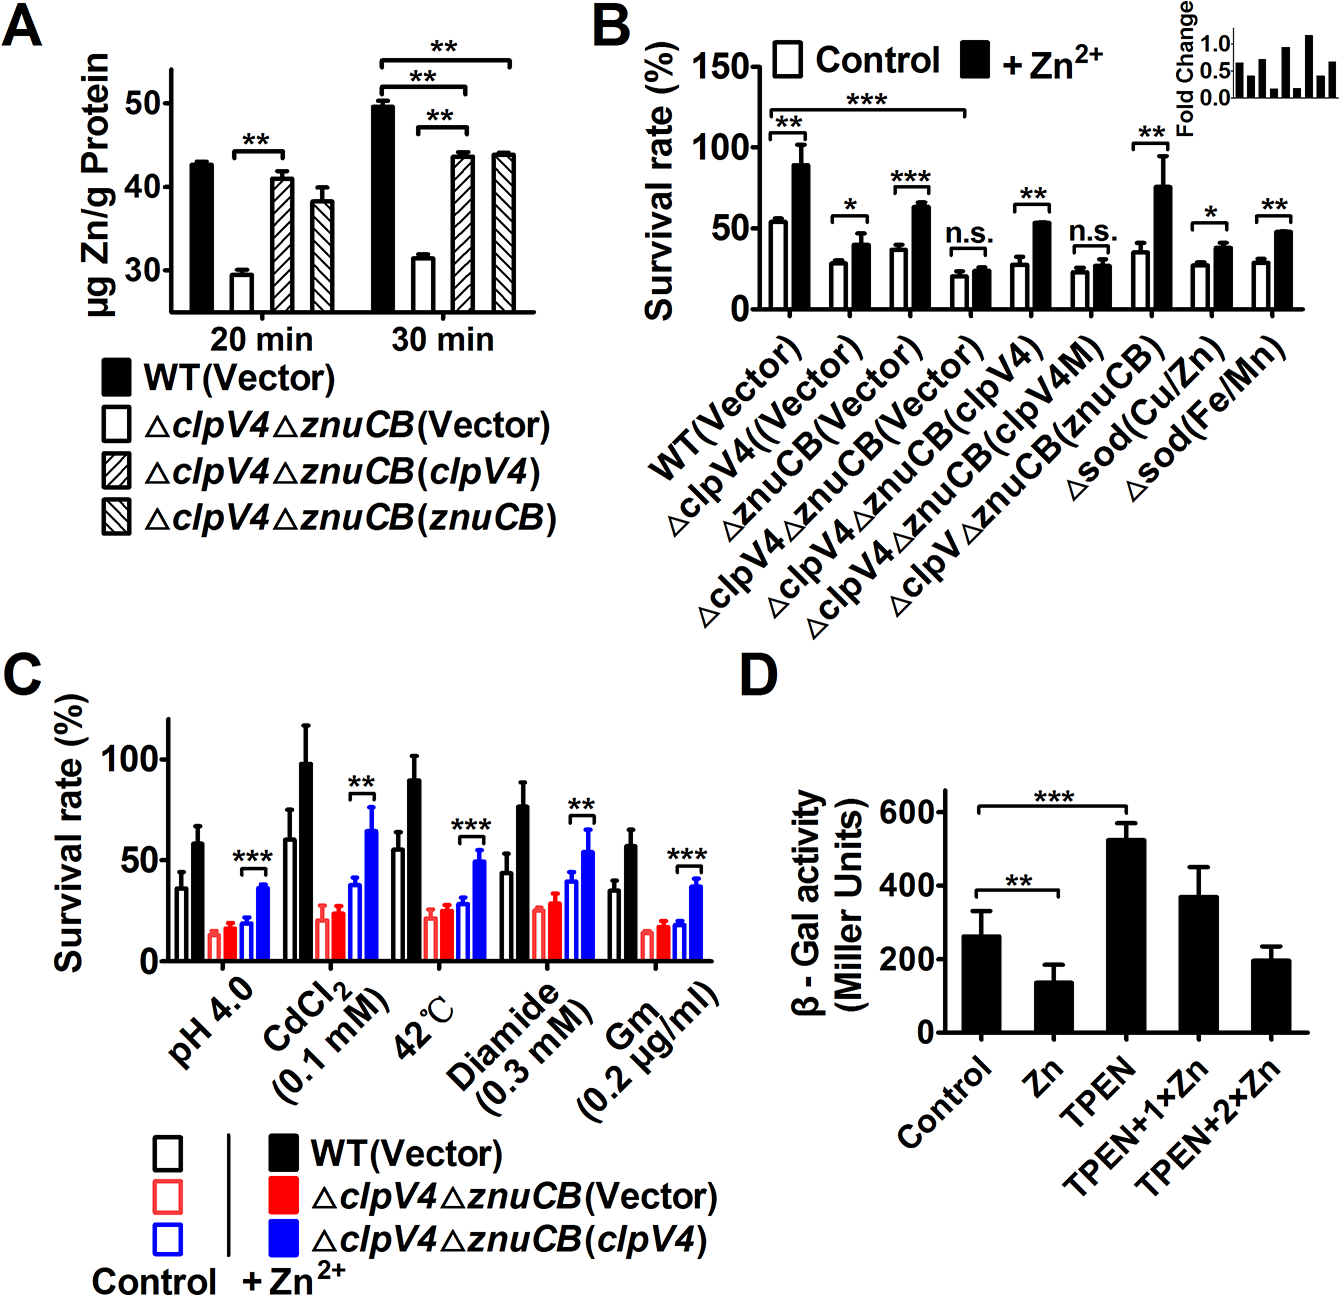 T6SS-4 is important for the accumulation of intracellular Zn<sup>2+</sup> under oxidative stress conditions.